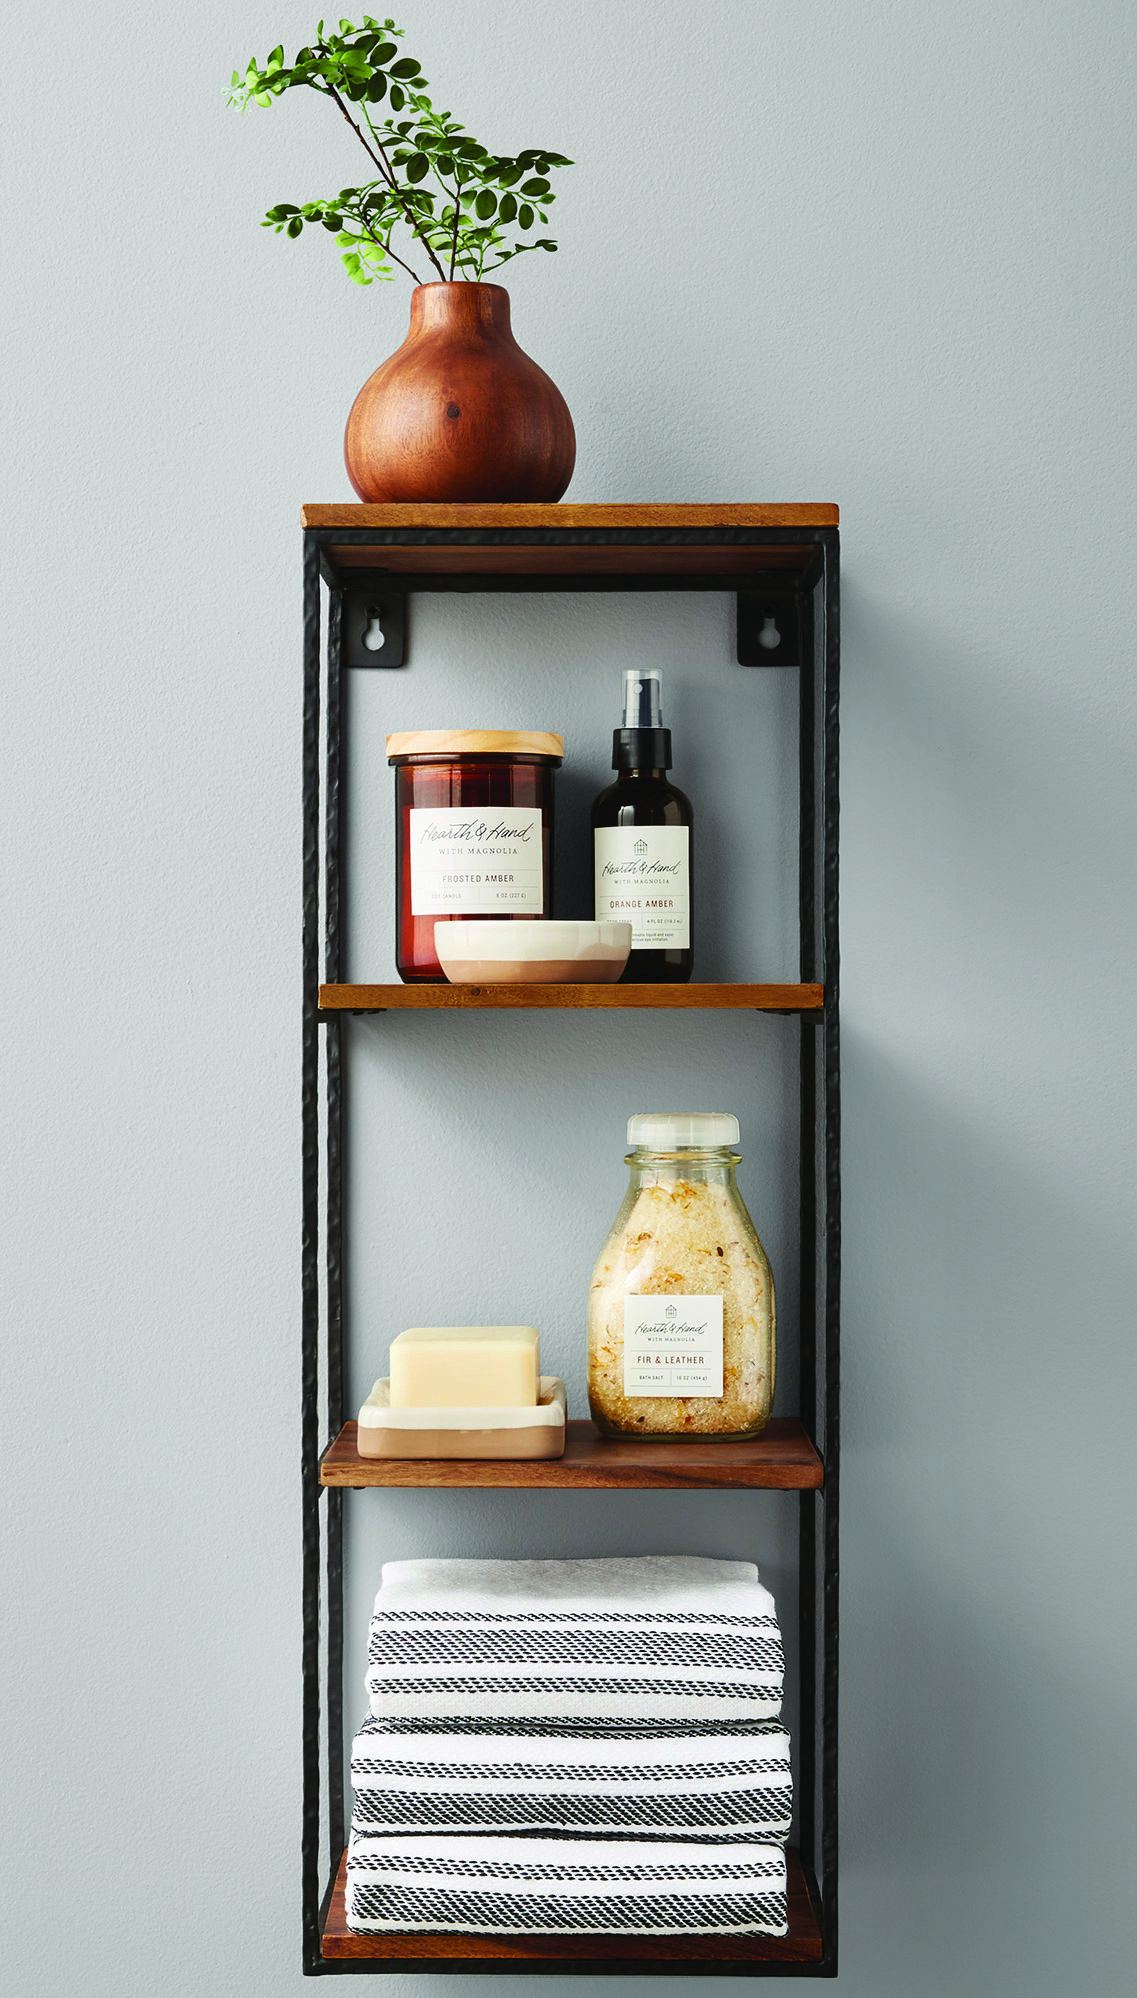 Target's New Fall Home Collections - Best Target Fall Decor Items